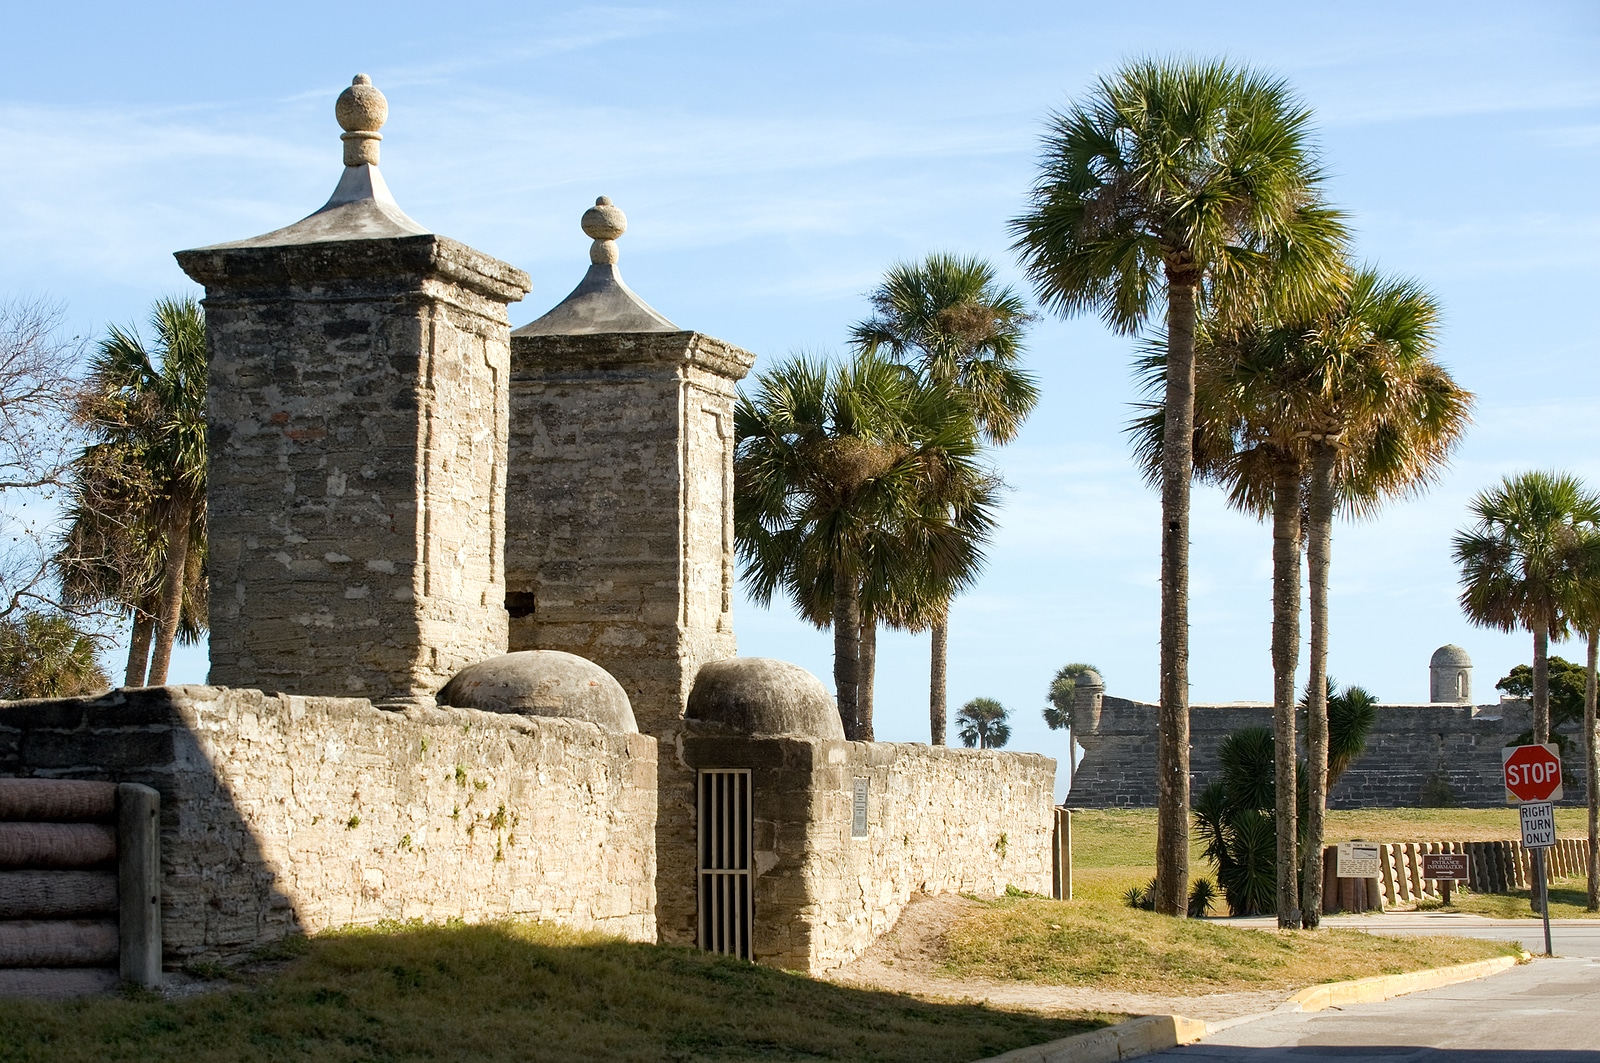 Explore the St. Augustine historic district